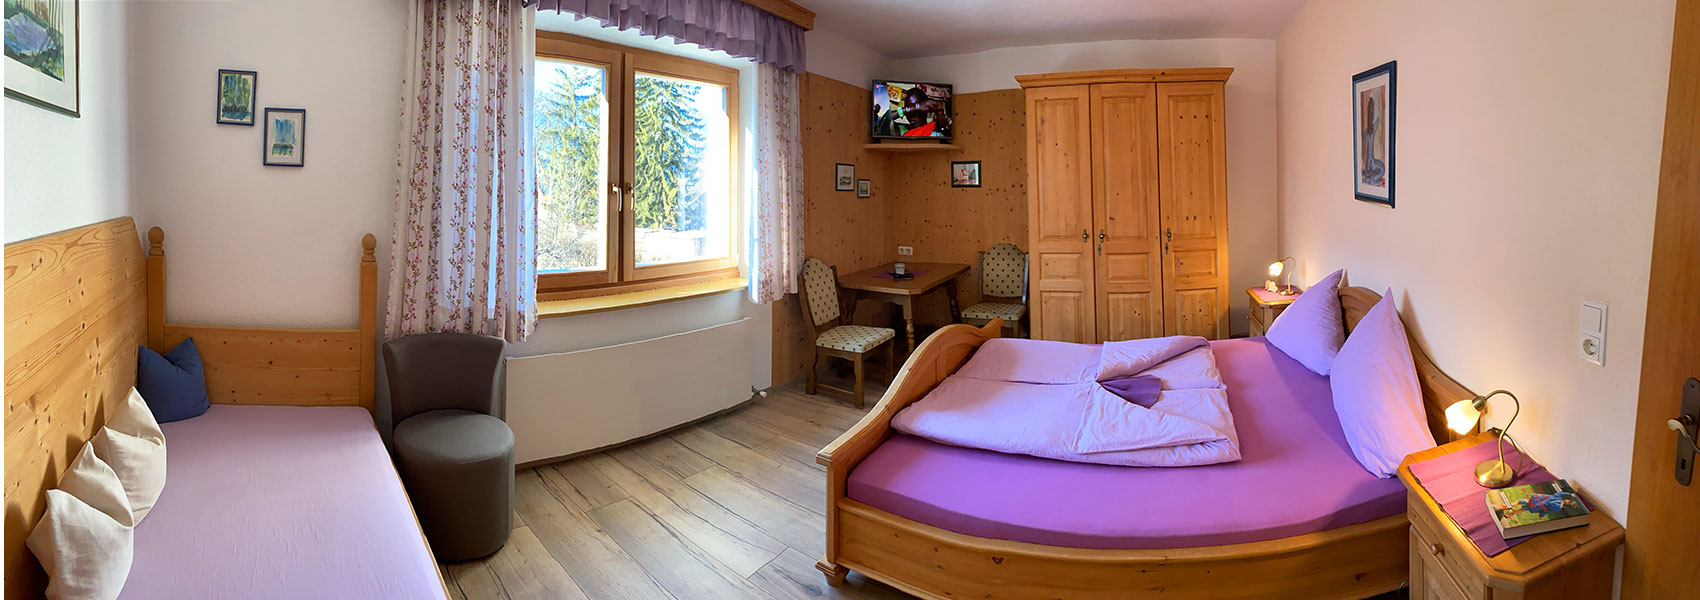 Header 05 Appartement 2 Kaltenbach Hofer